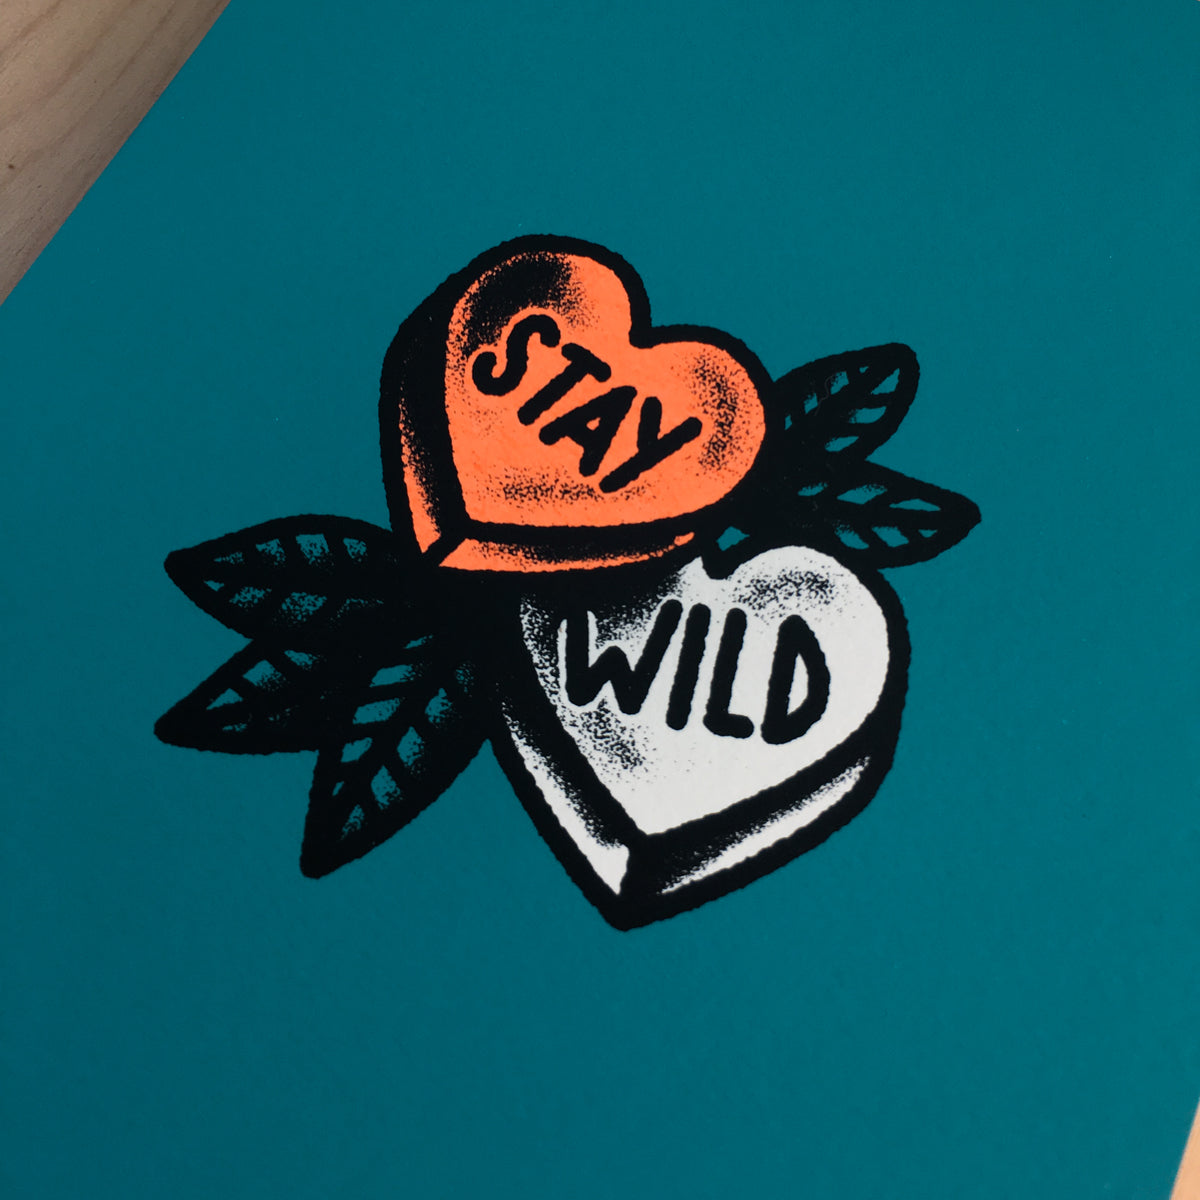 Stay Wild - Signed Print #182